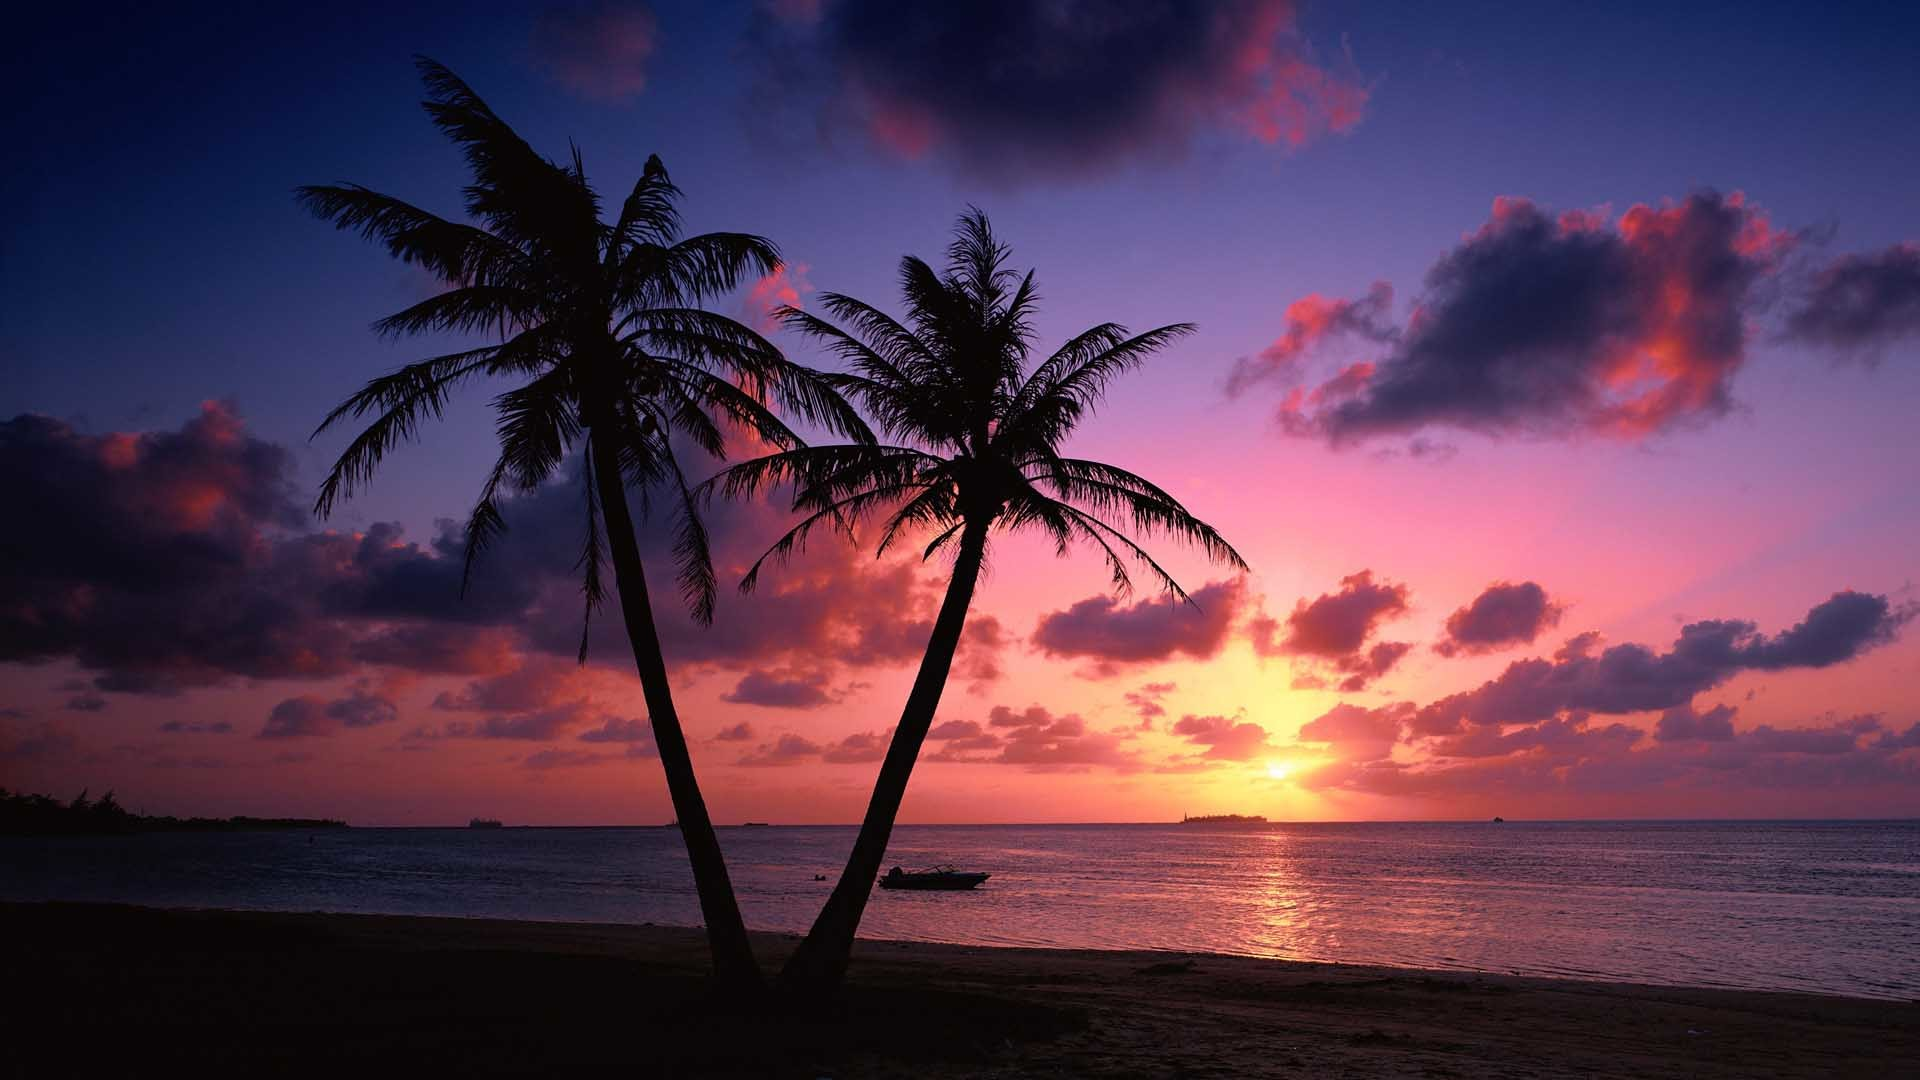 hd beach sunset wallpapers for mac